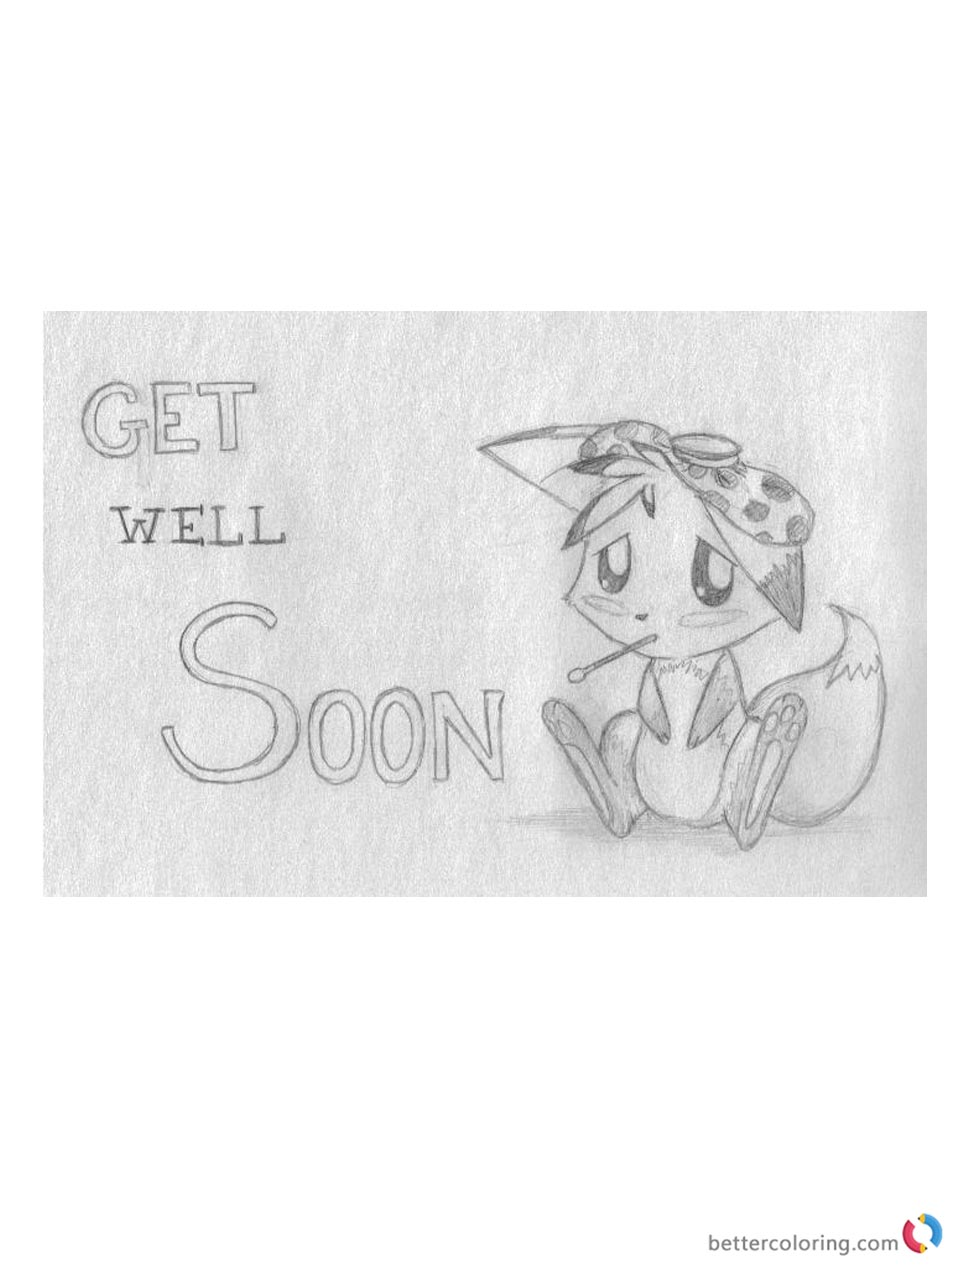 Radiant Kids Get Well Soon Quotes Download This Coloring Print This Coloring Get Well Soon Get Well Soon Coloring Page Animal Free Printable Coloring Pages Get Well Soon Quotes Cards cards Get Well Soon Cute